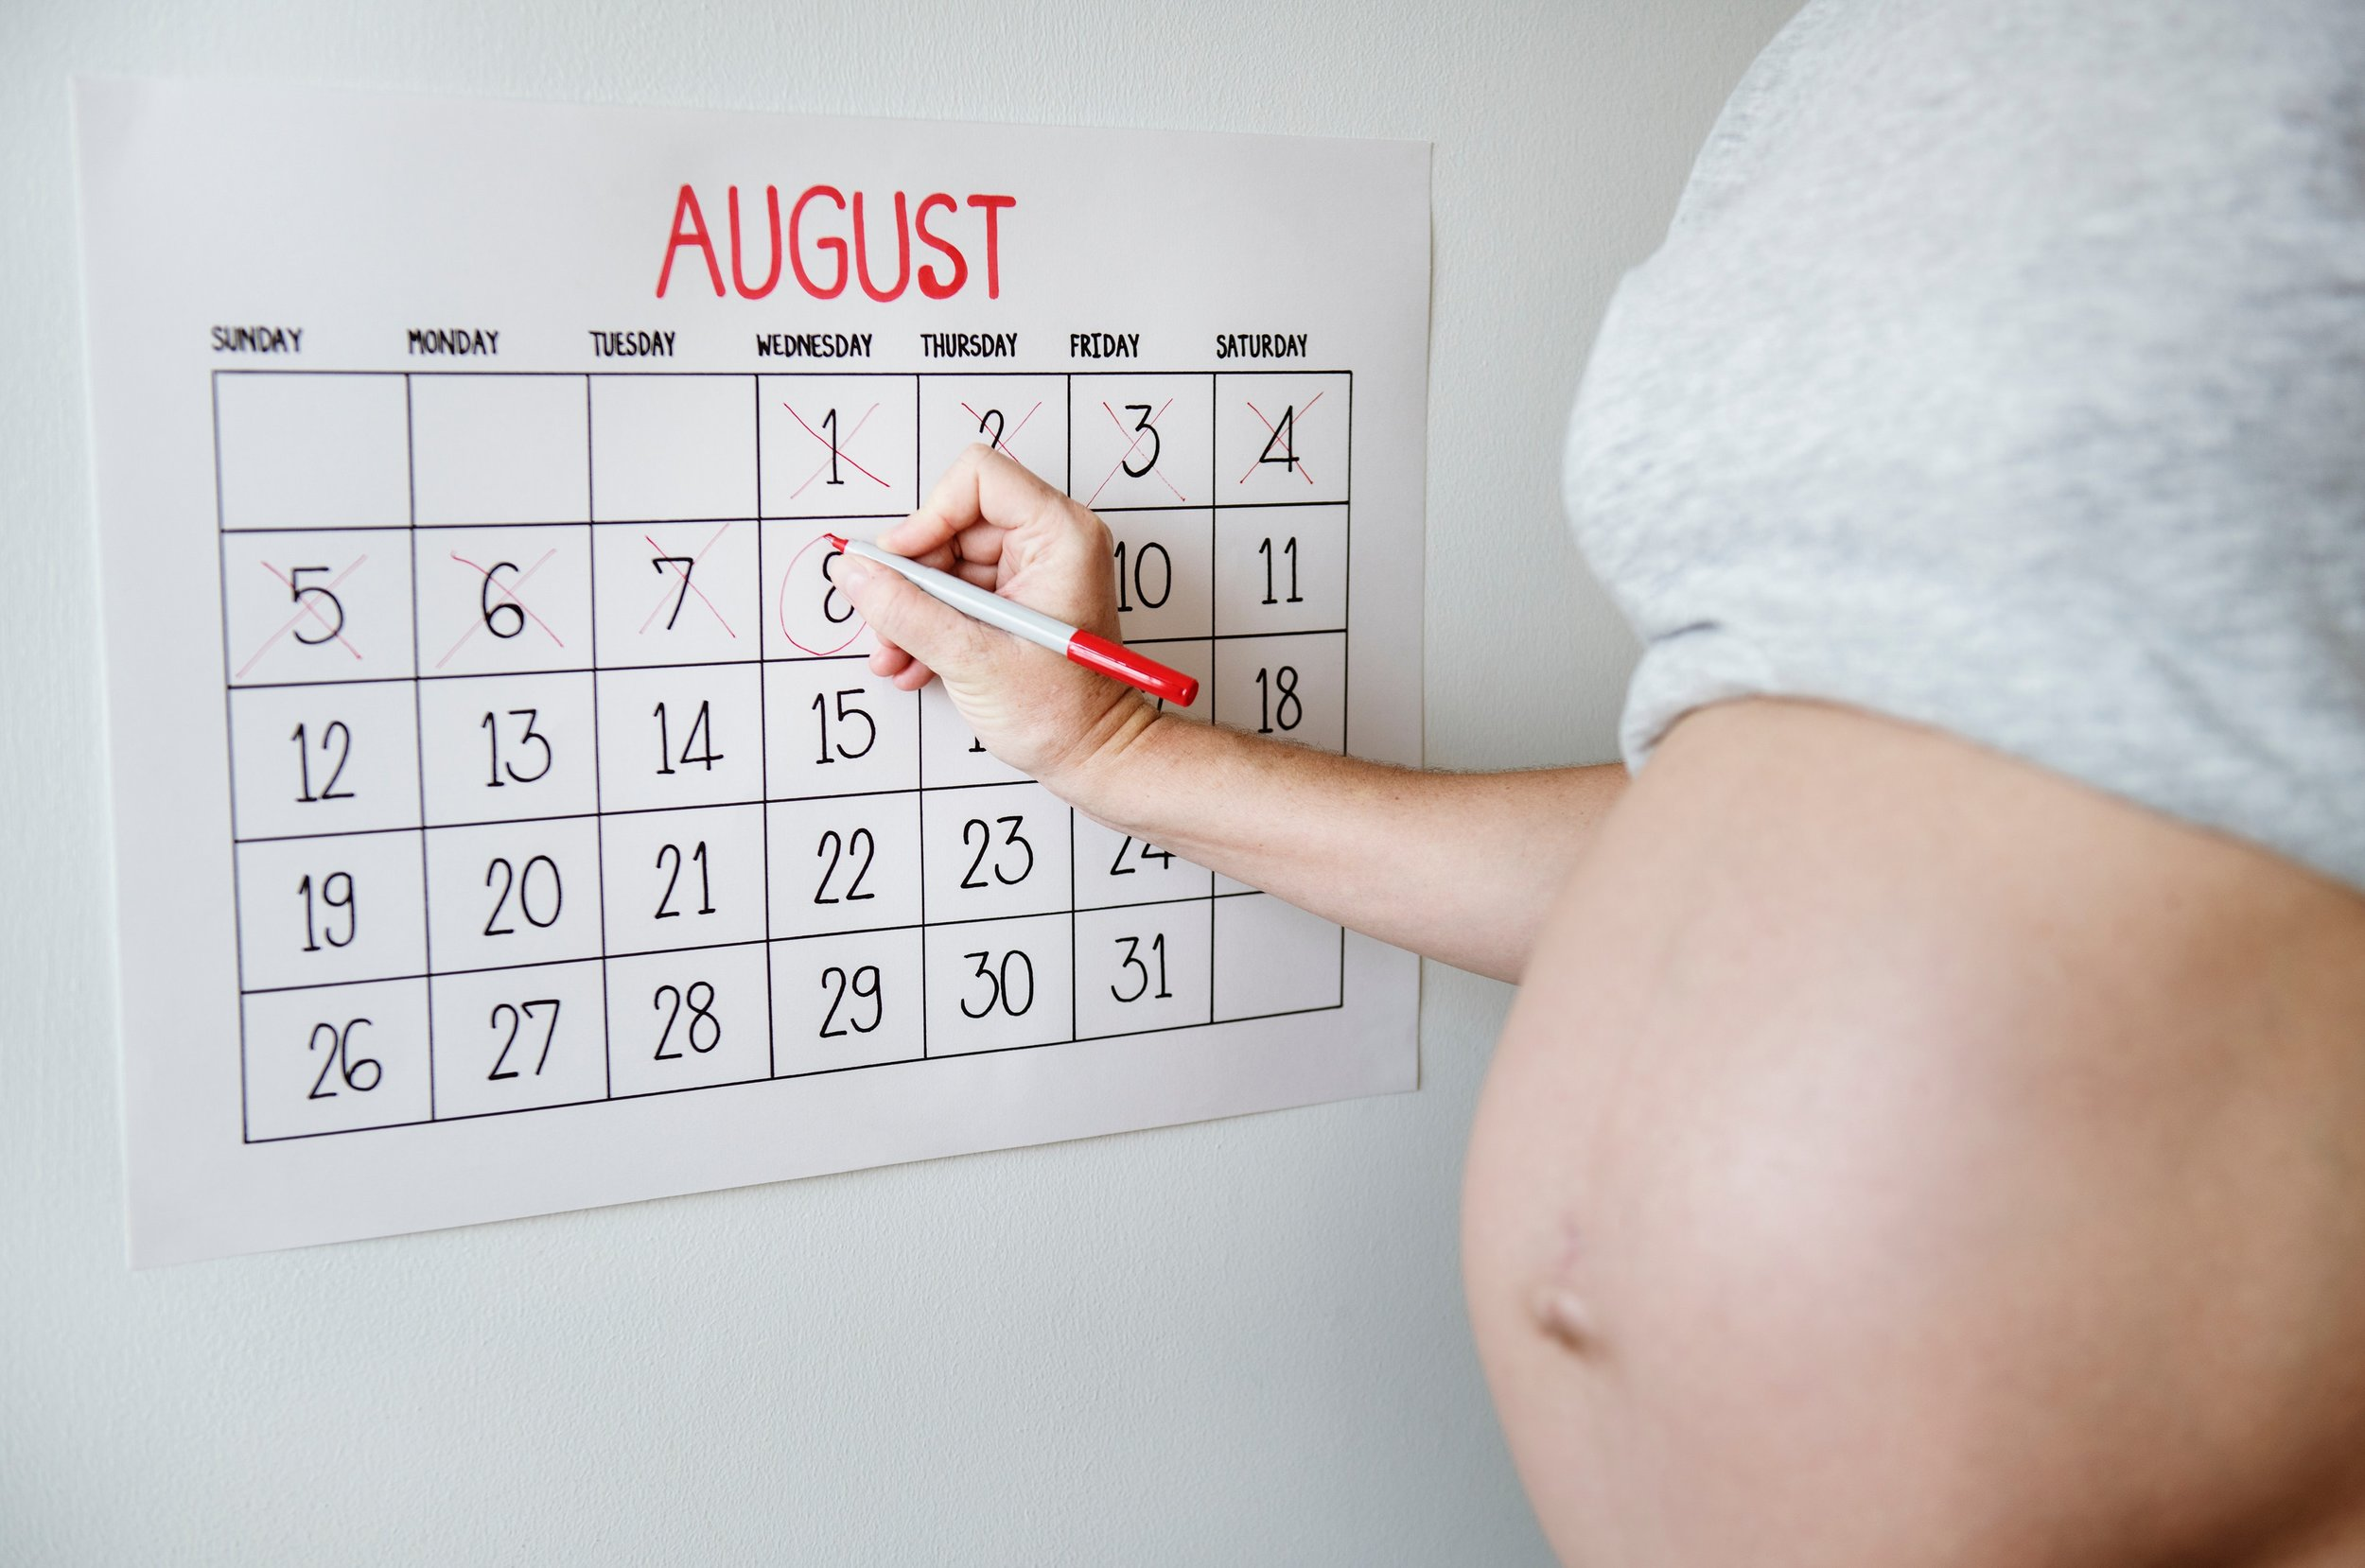 belly-calendar-countdown-1282310.jpg